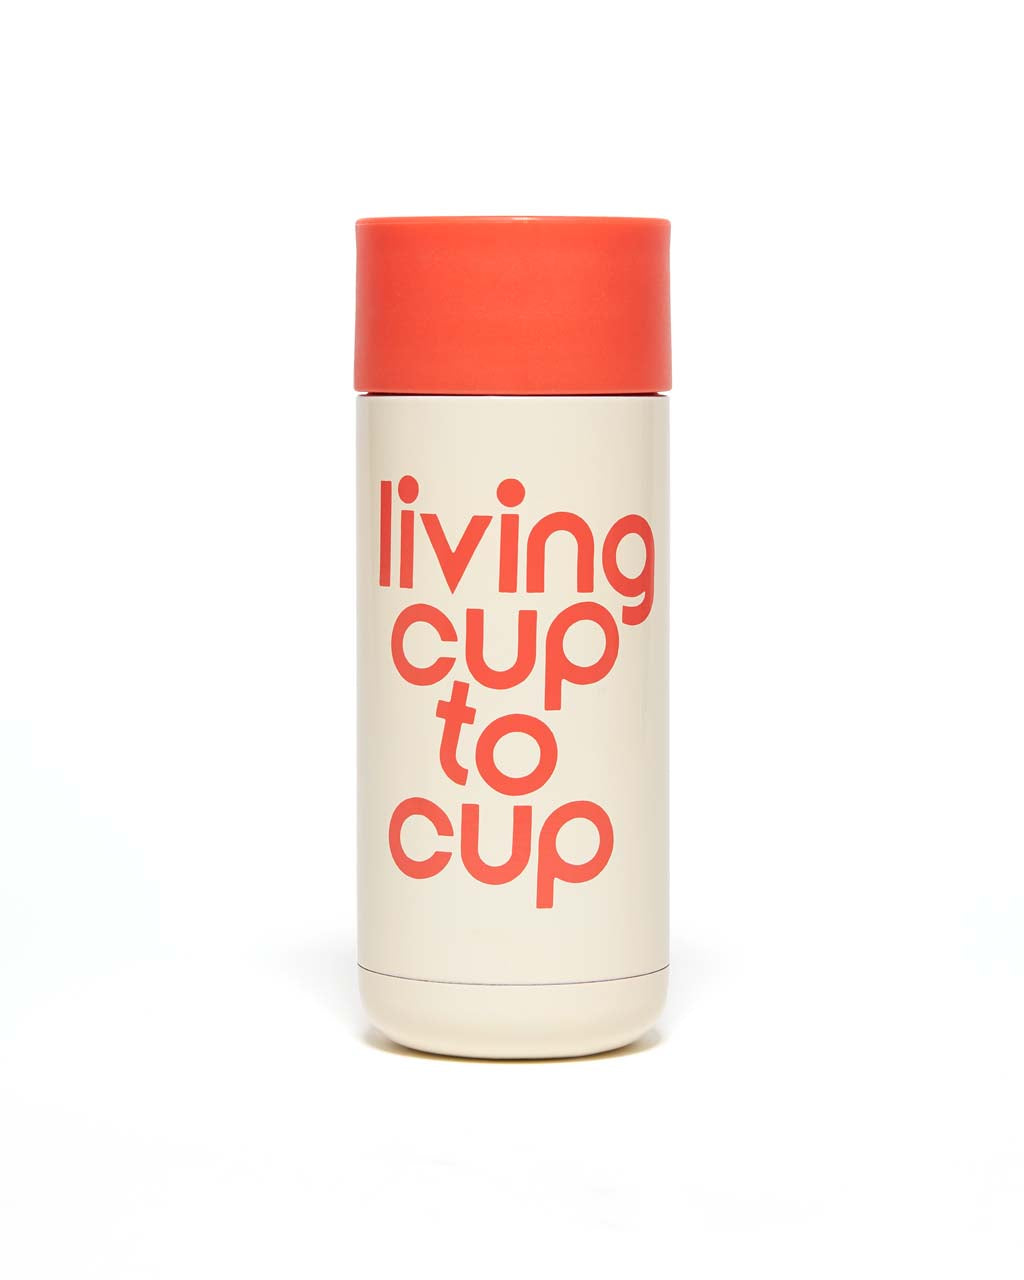 This Thermal Mug comes in white and red, with 'Living Cup To Cup' printed in red on the side.